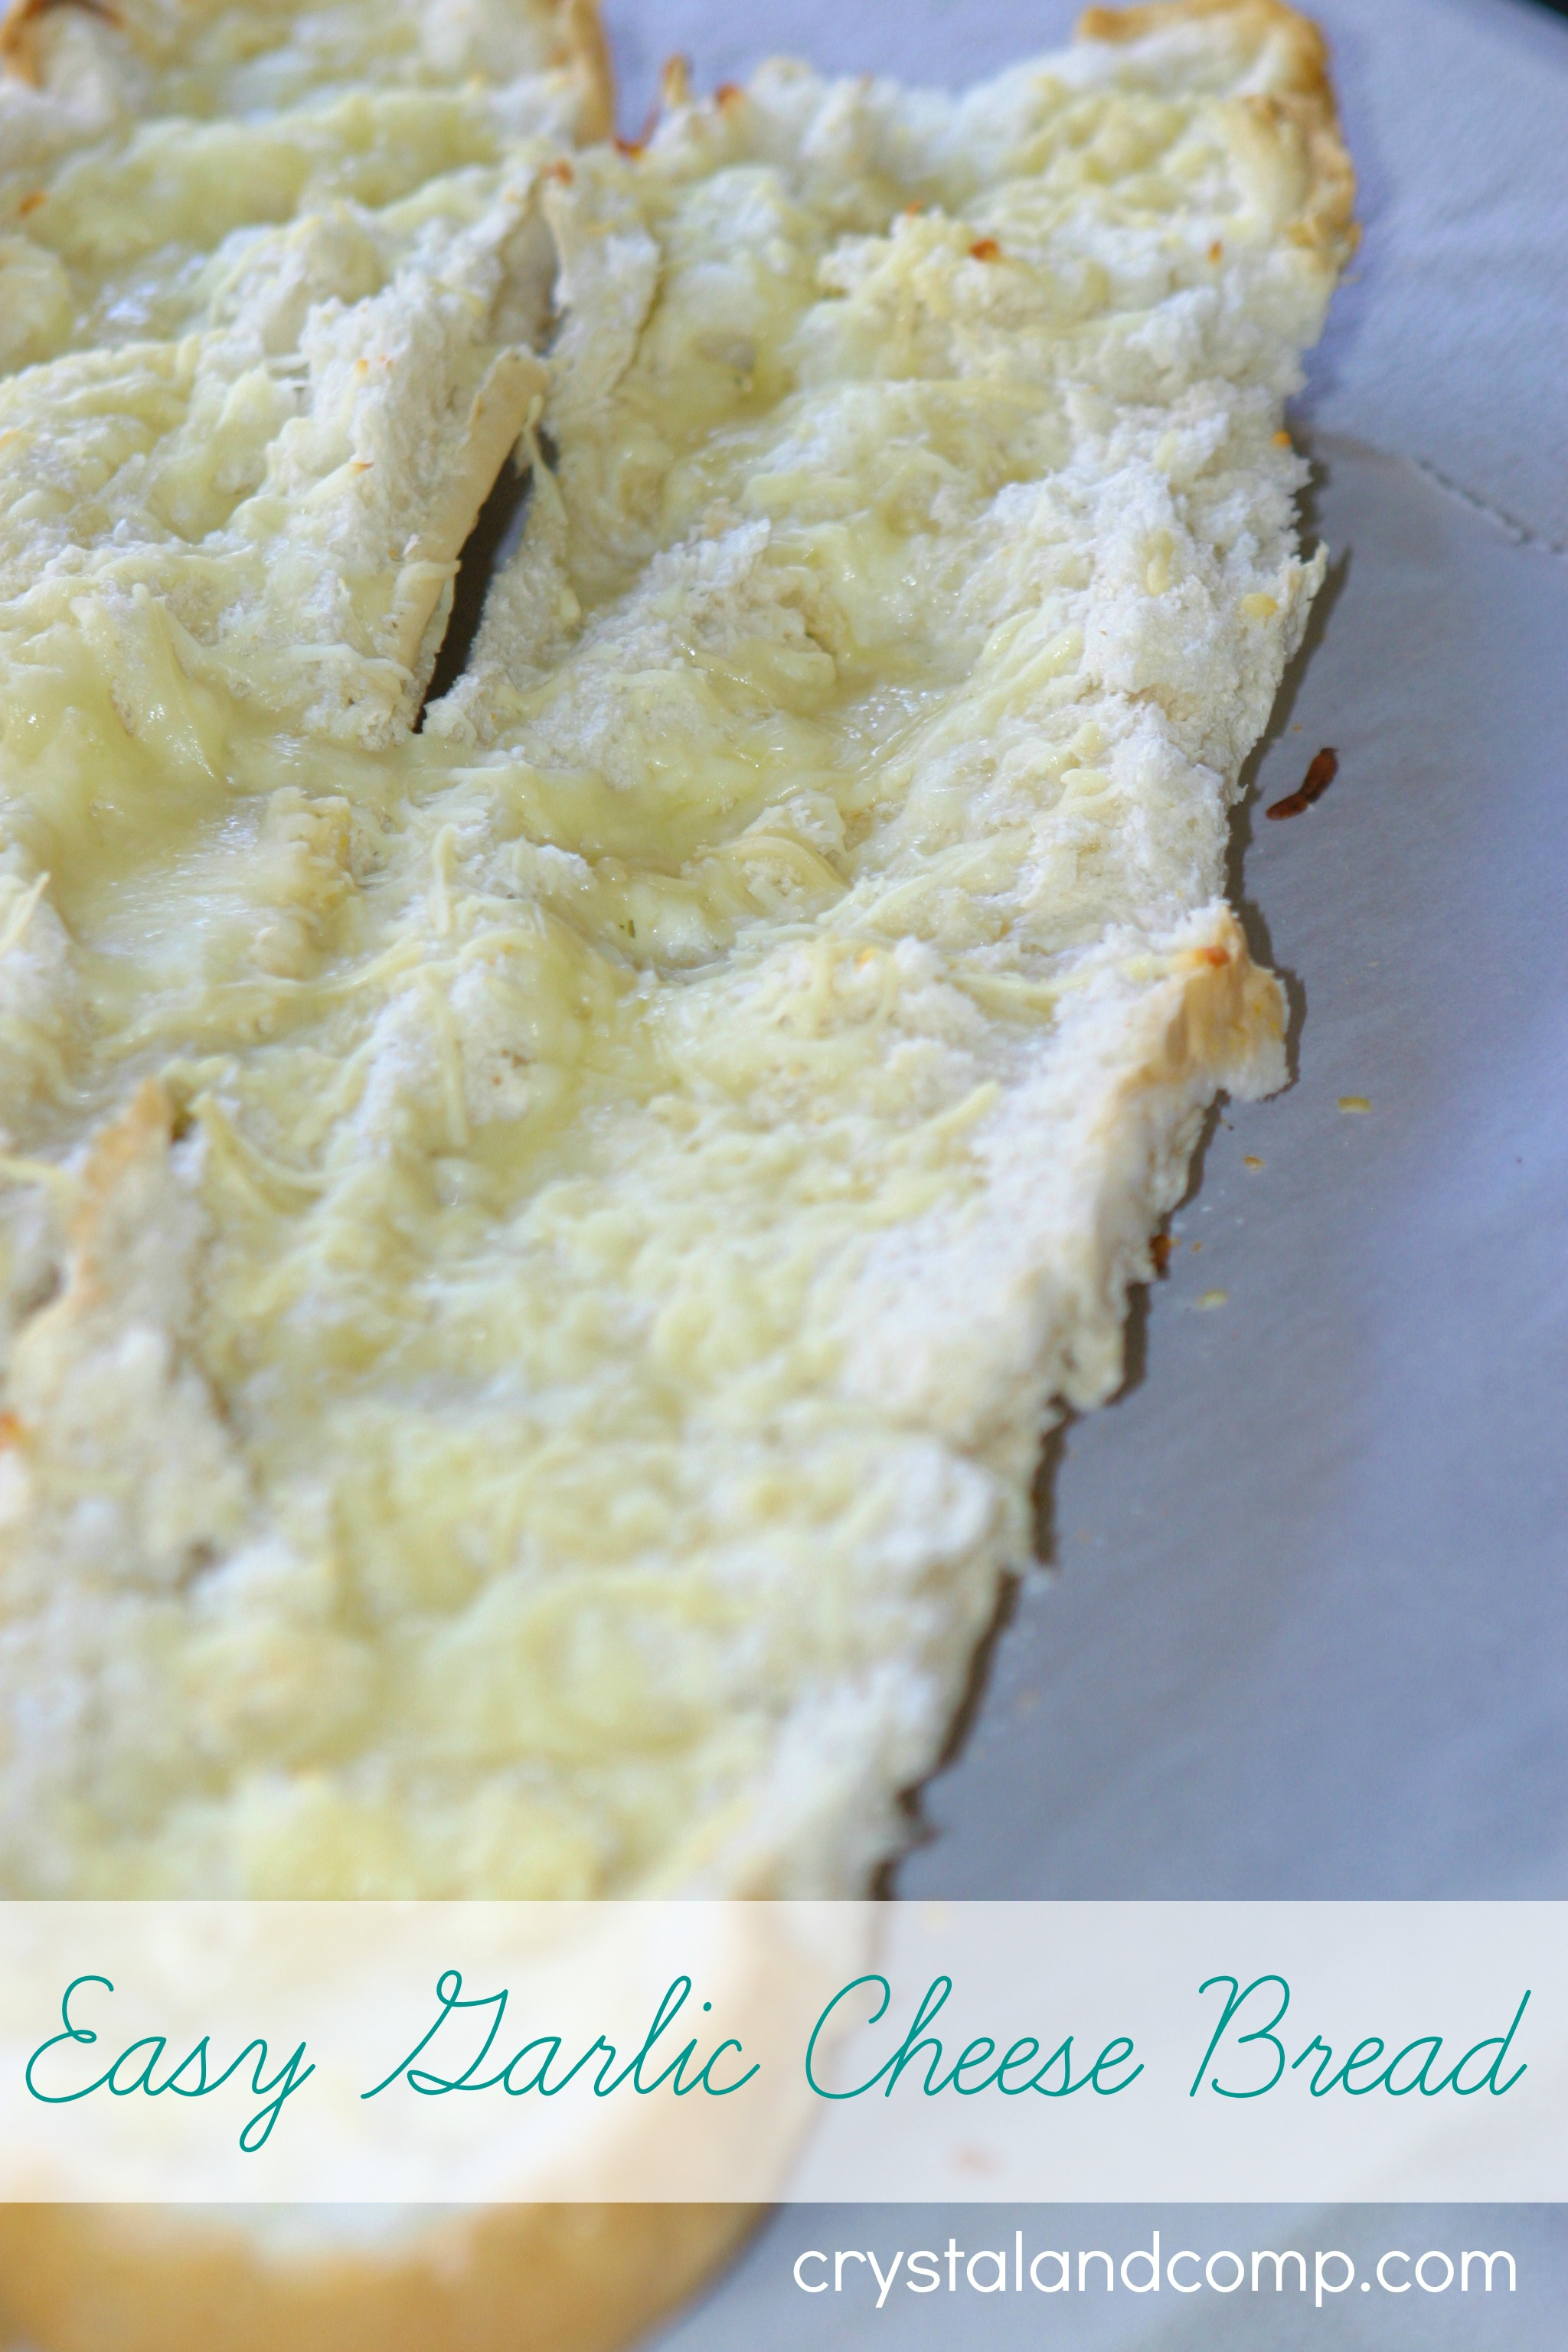 easy garlic cheese bread